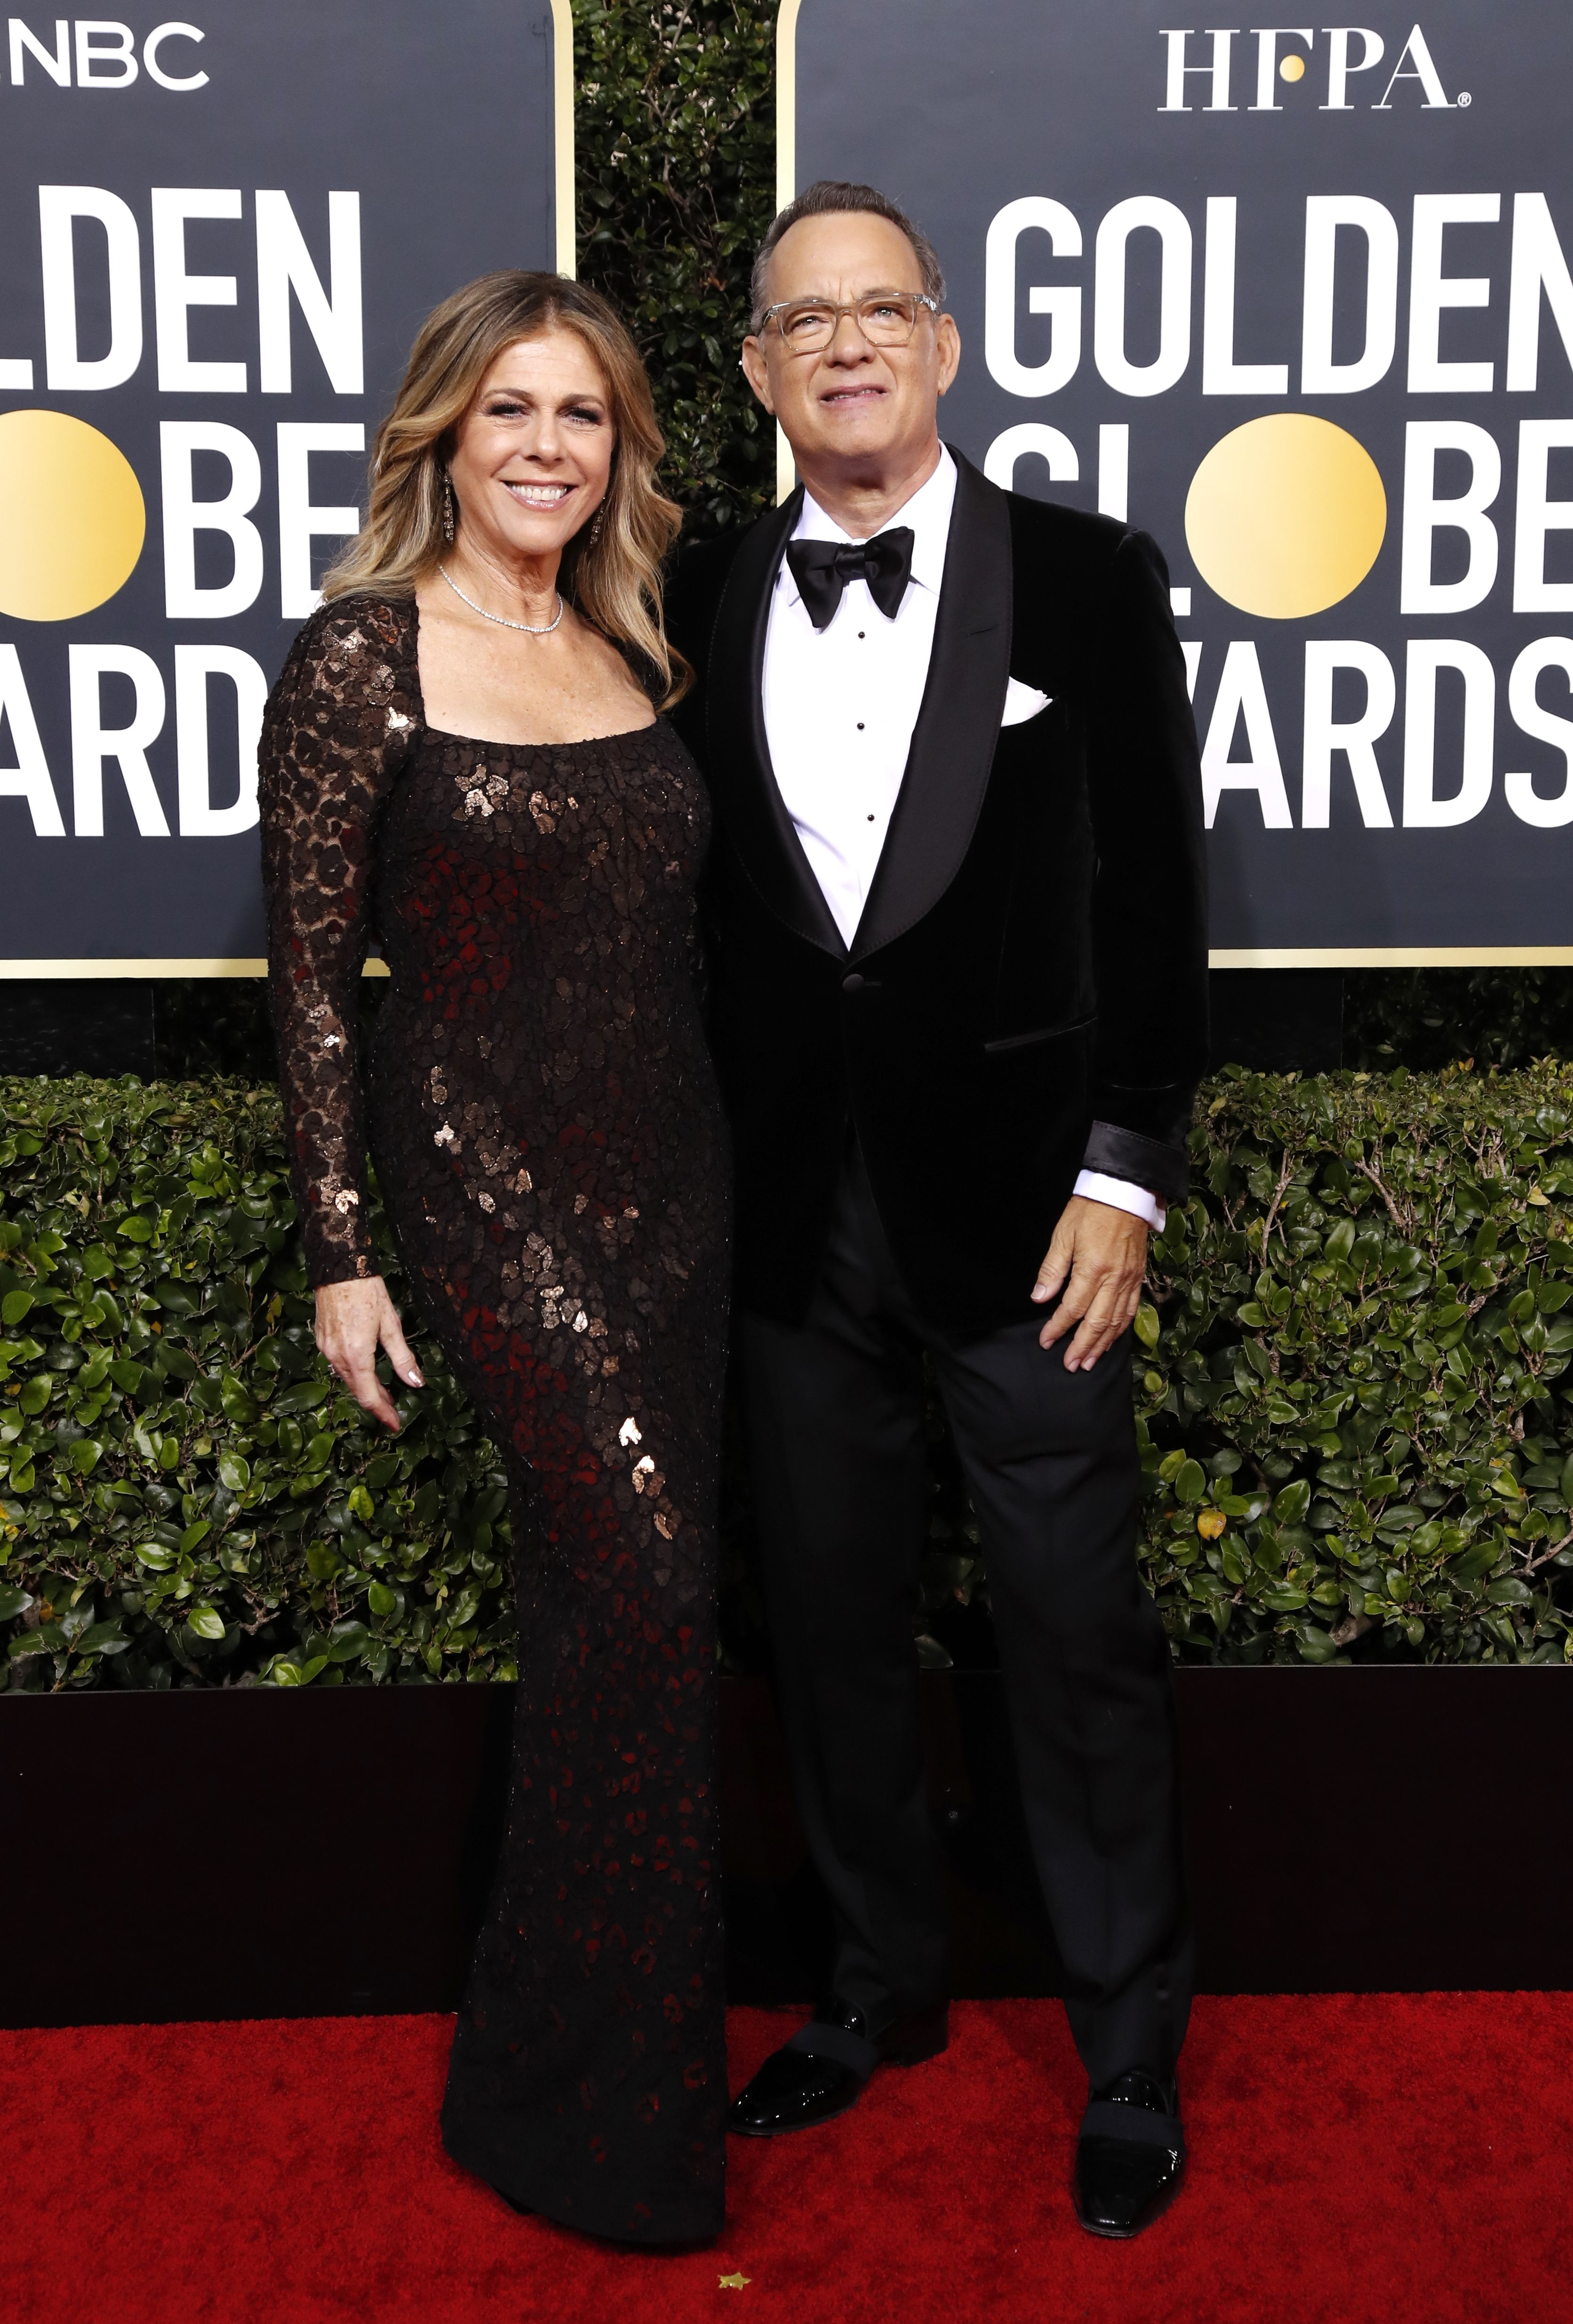 Rita Wilson (L) and Tom Hanks arrive for the 77th annual Golden Globe Awards ceremony at the Beverly Hilton Hotel, in Beverly Hills, California, USA, 05 January 2020.Arrivals - 77th Golden Globe Awards, Beverly Hills, USA - 05 Jan 2020